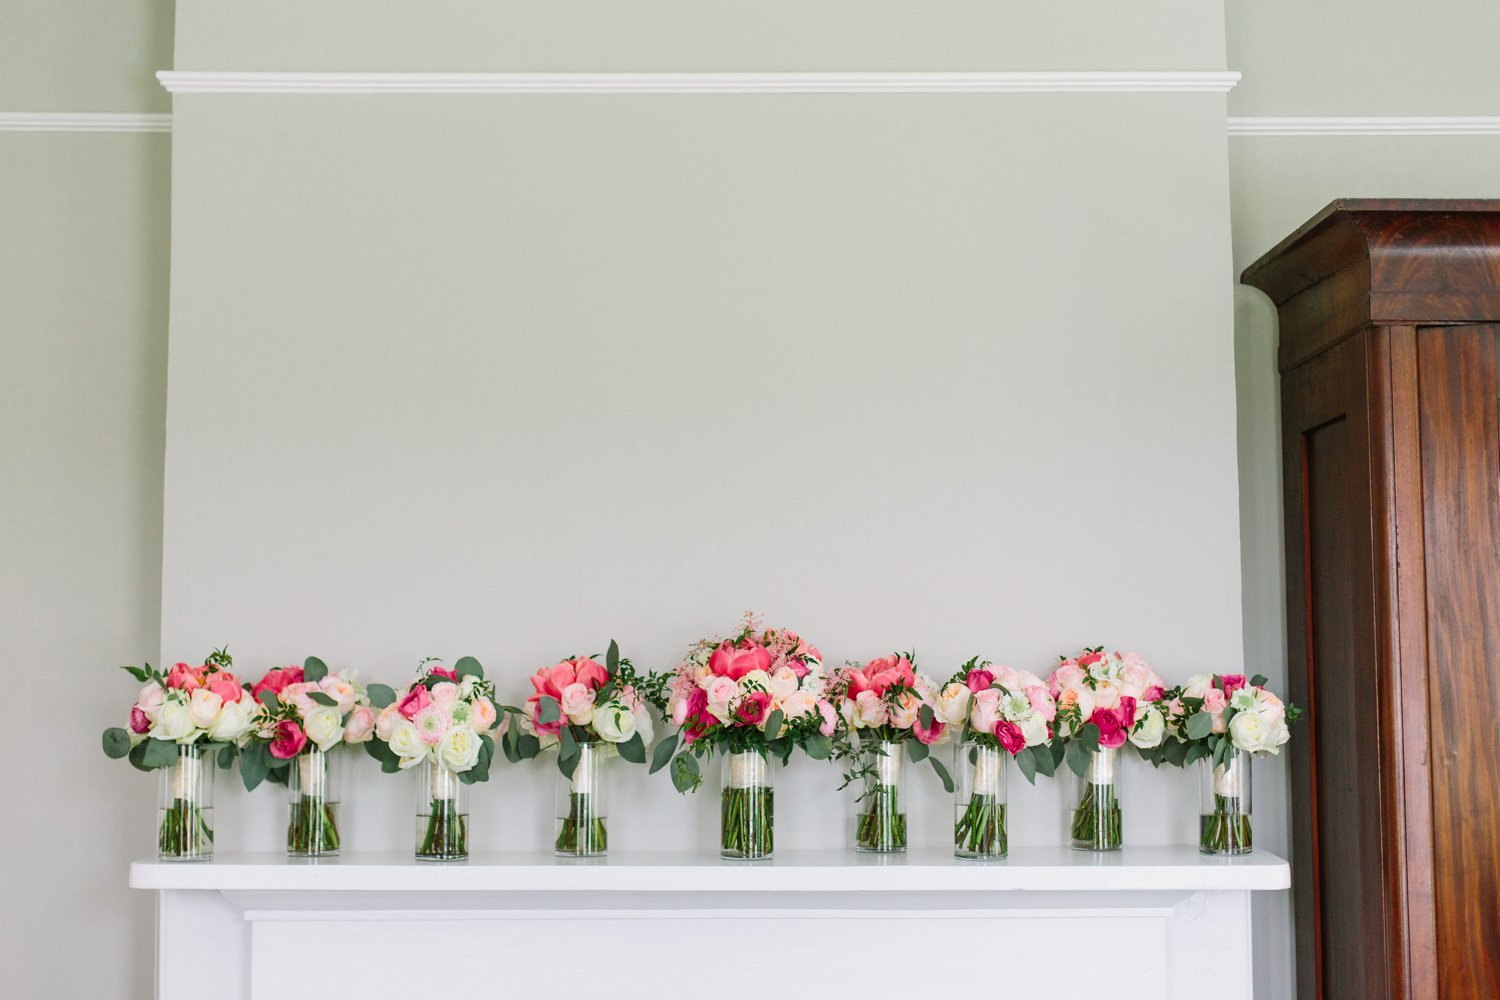 Lindsey_A_Miller_Photography_mcleod_plantation_wedding_charleston_south_carolina_clear_tent_spring_mod_events_008.jpg